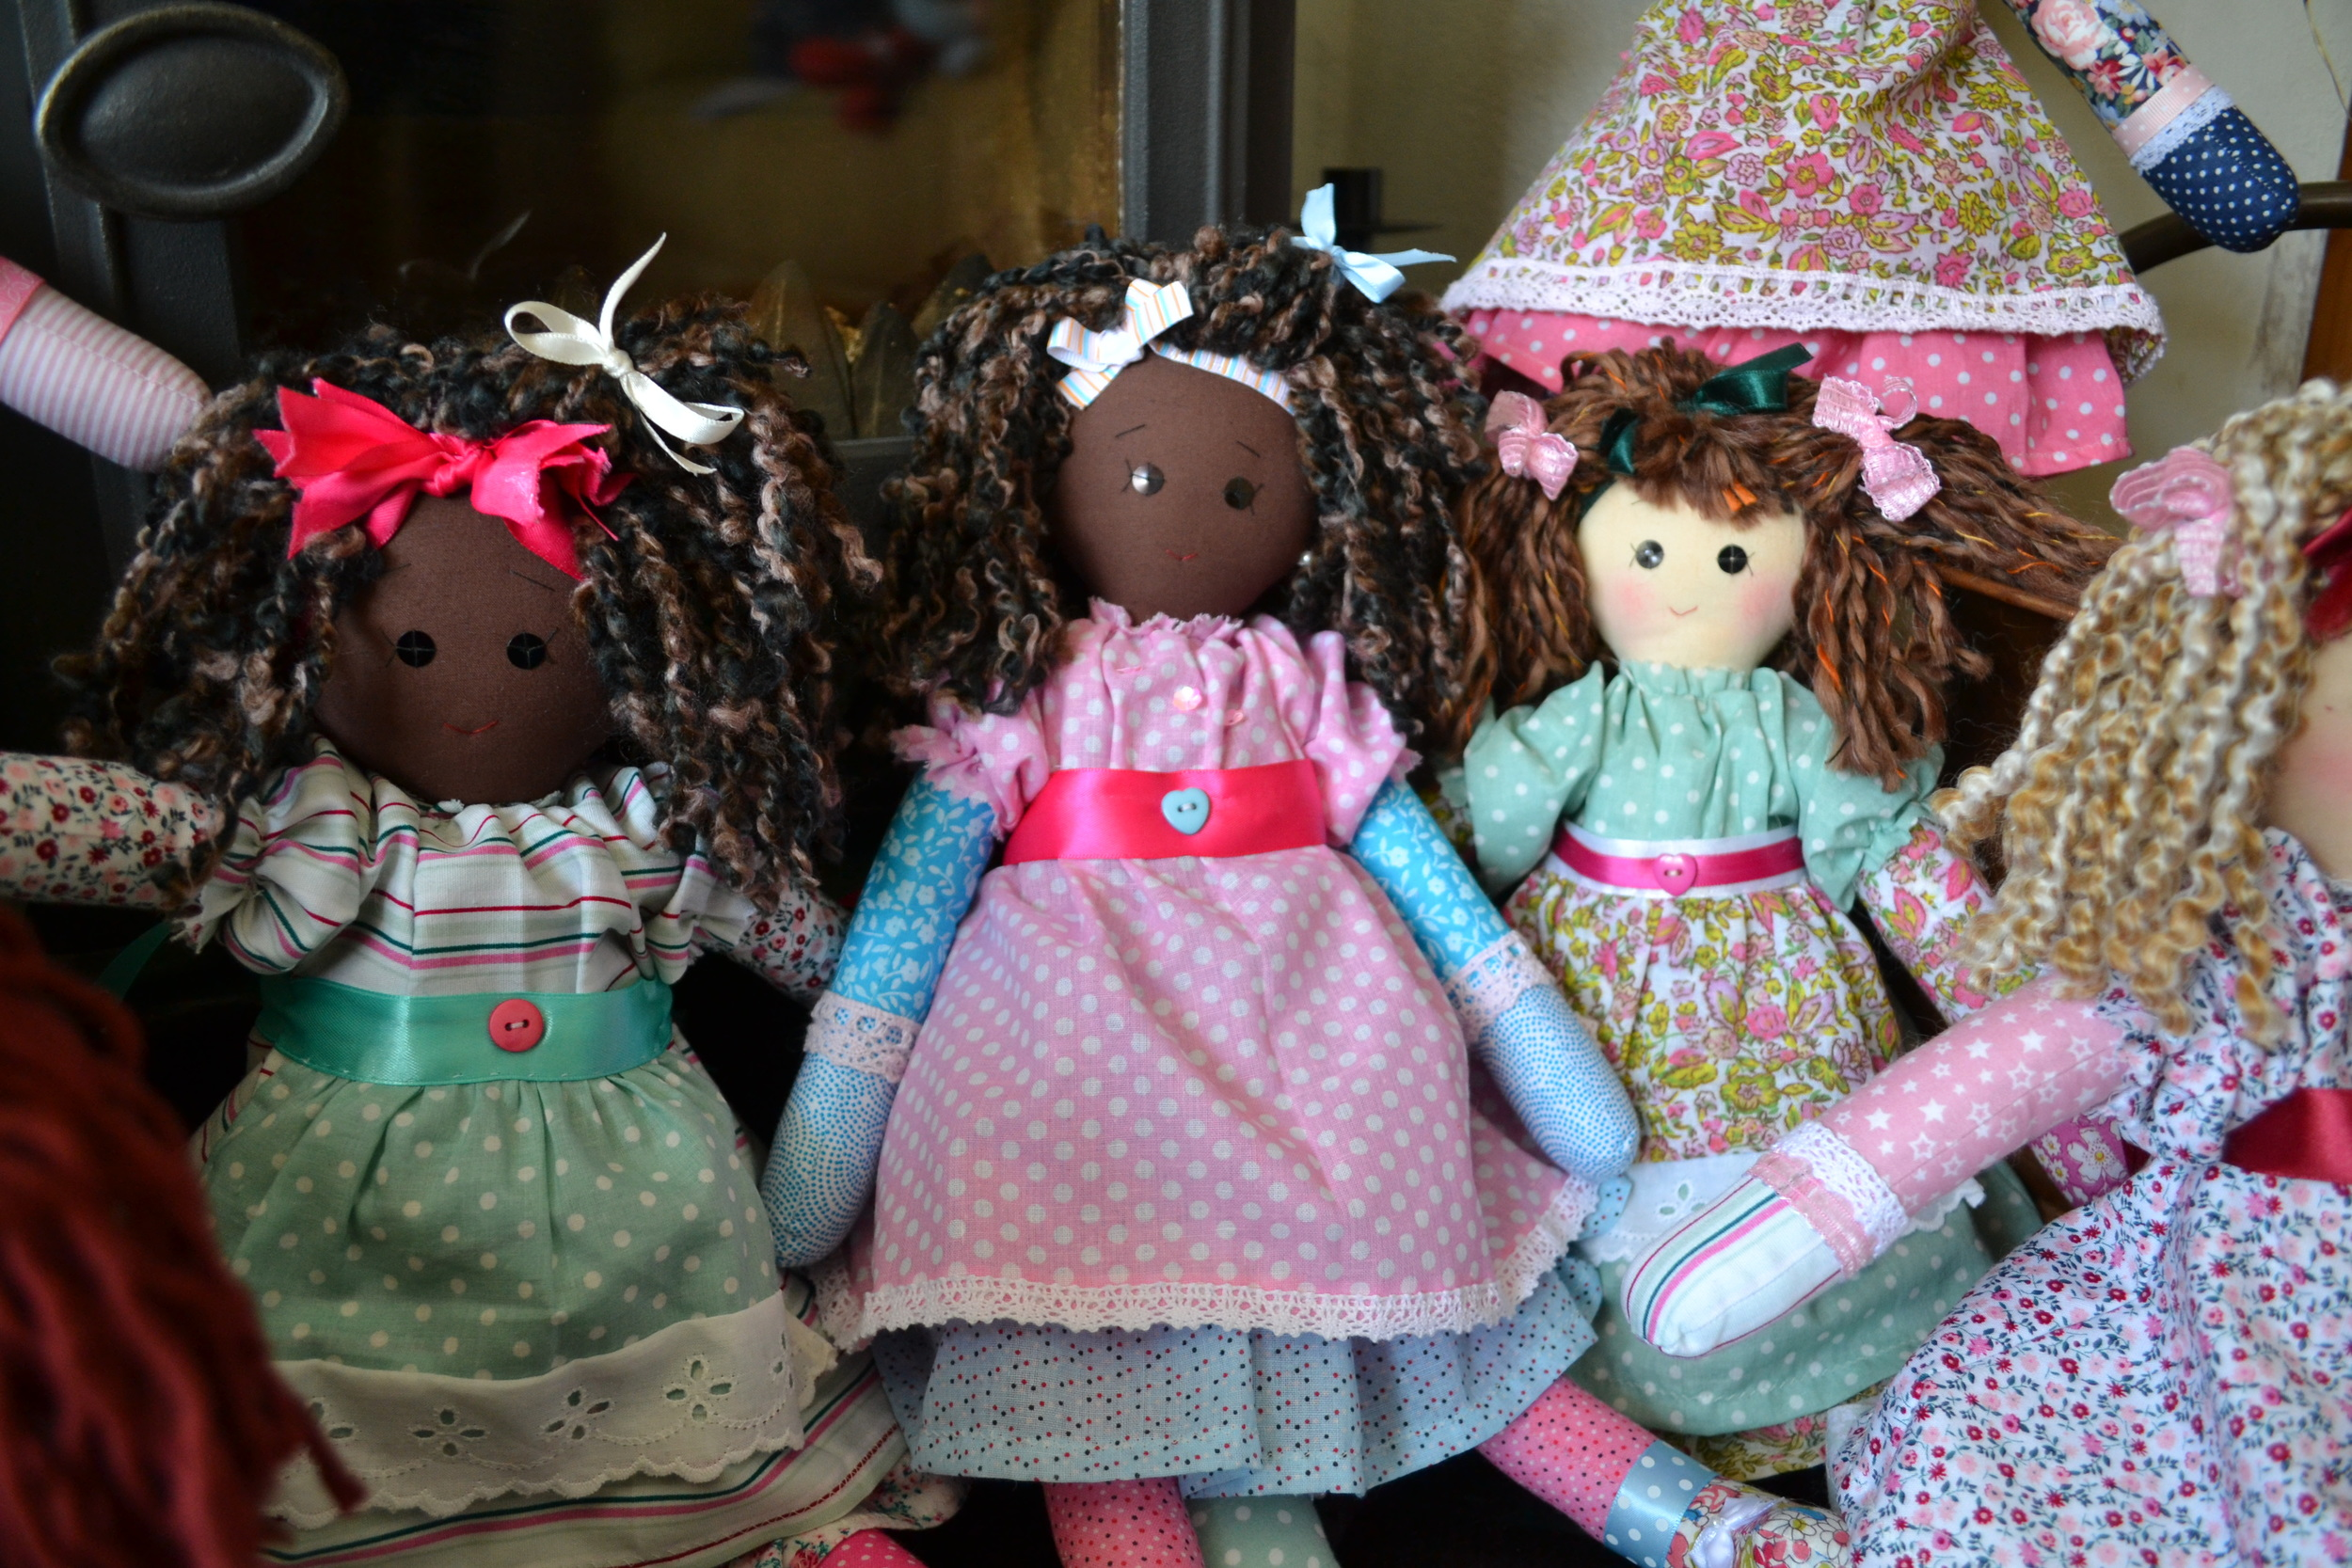 A group of small Jemima dolls